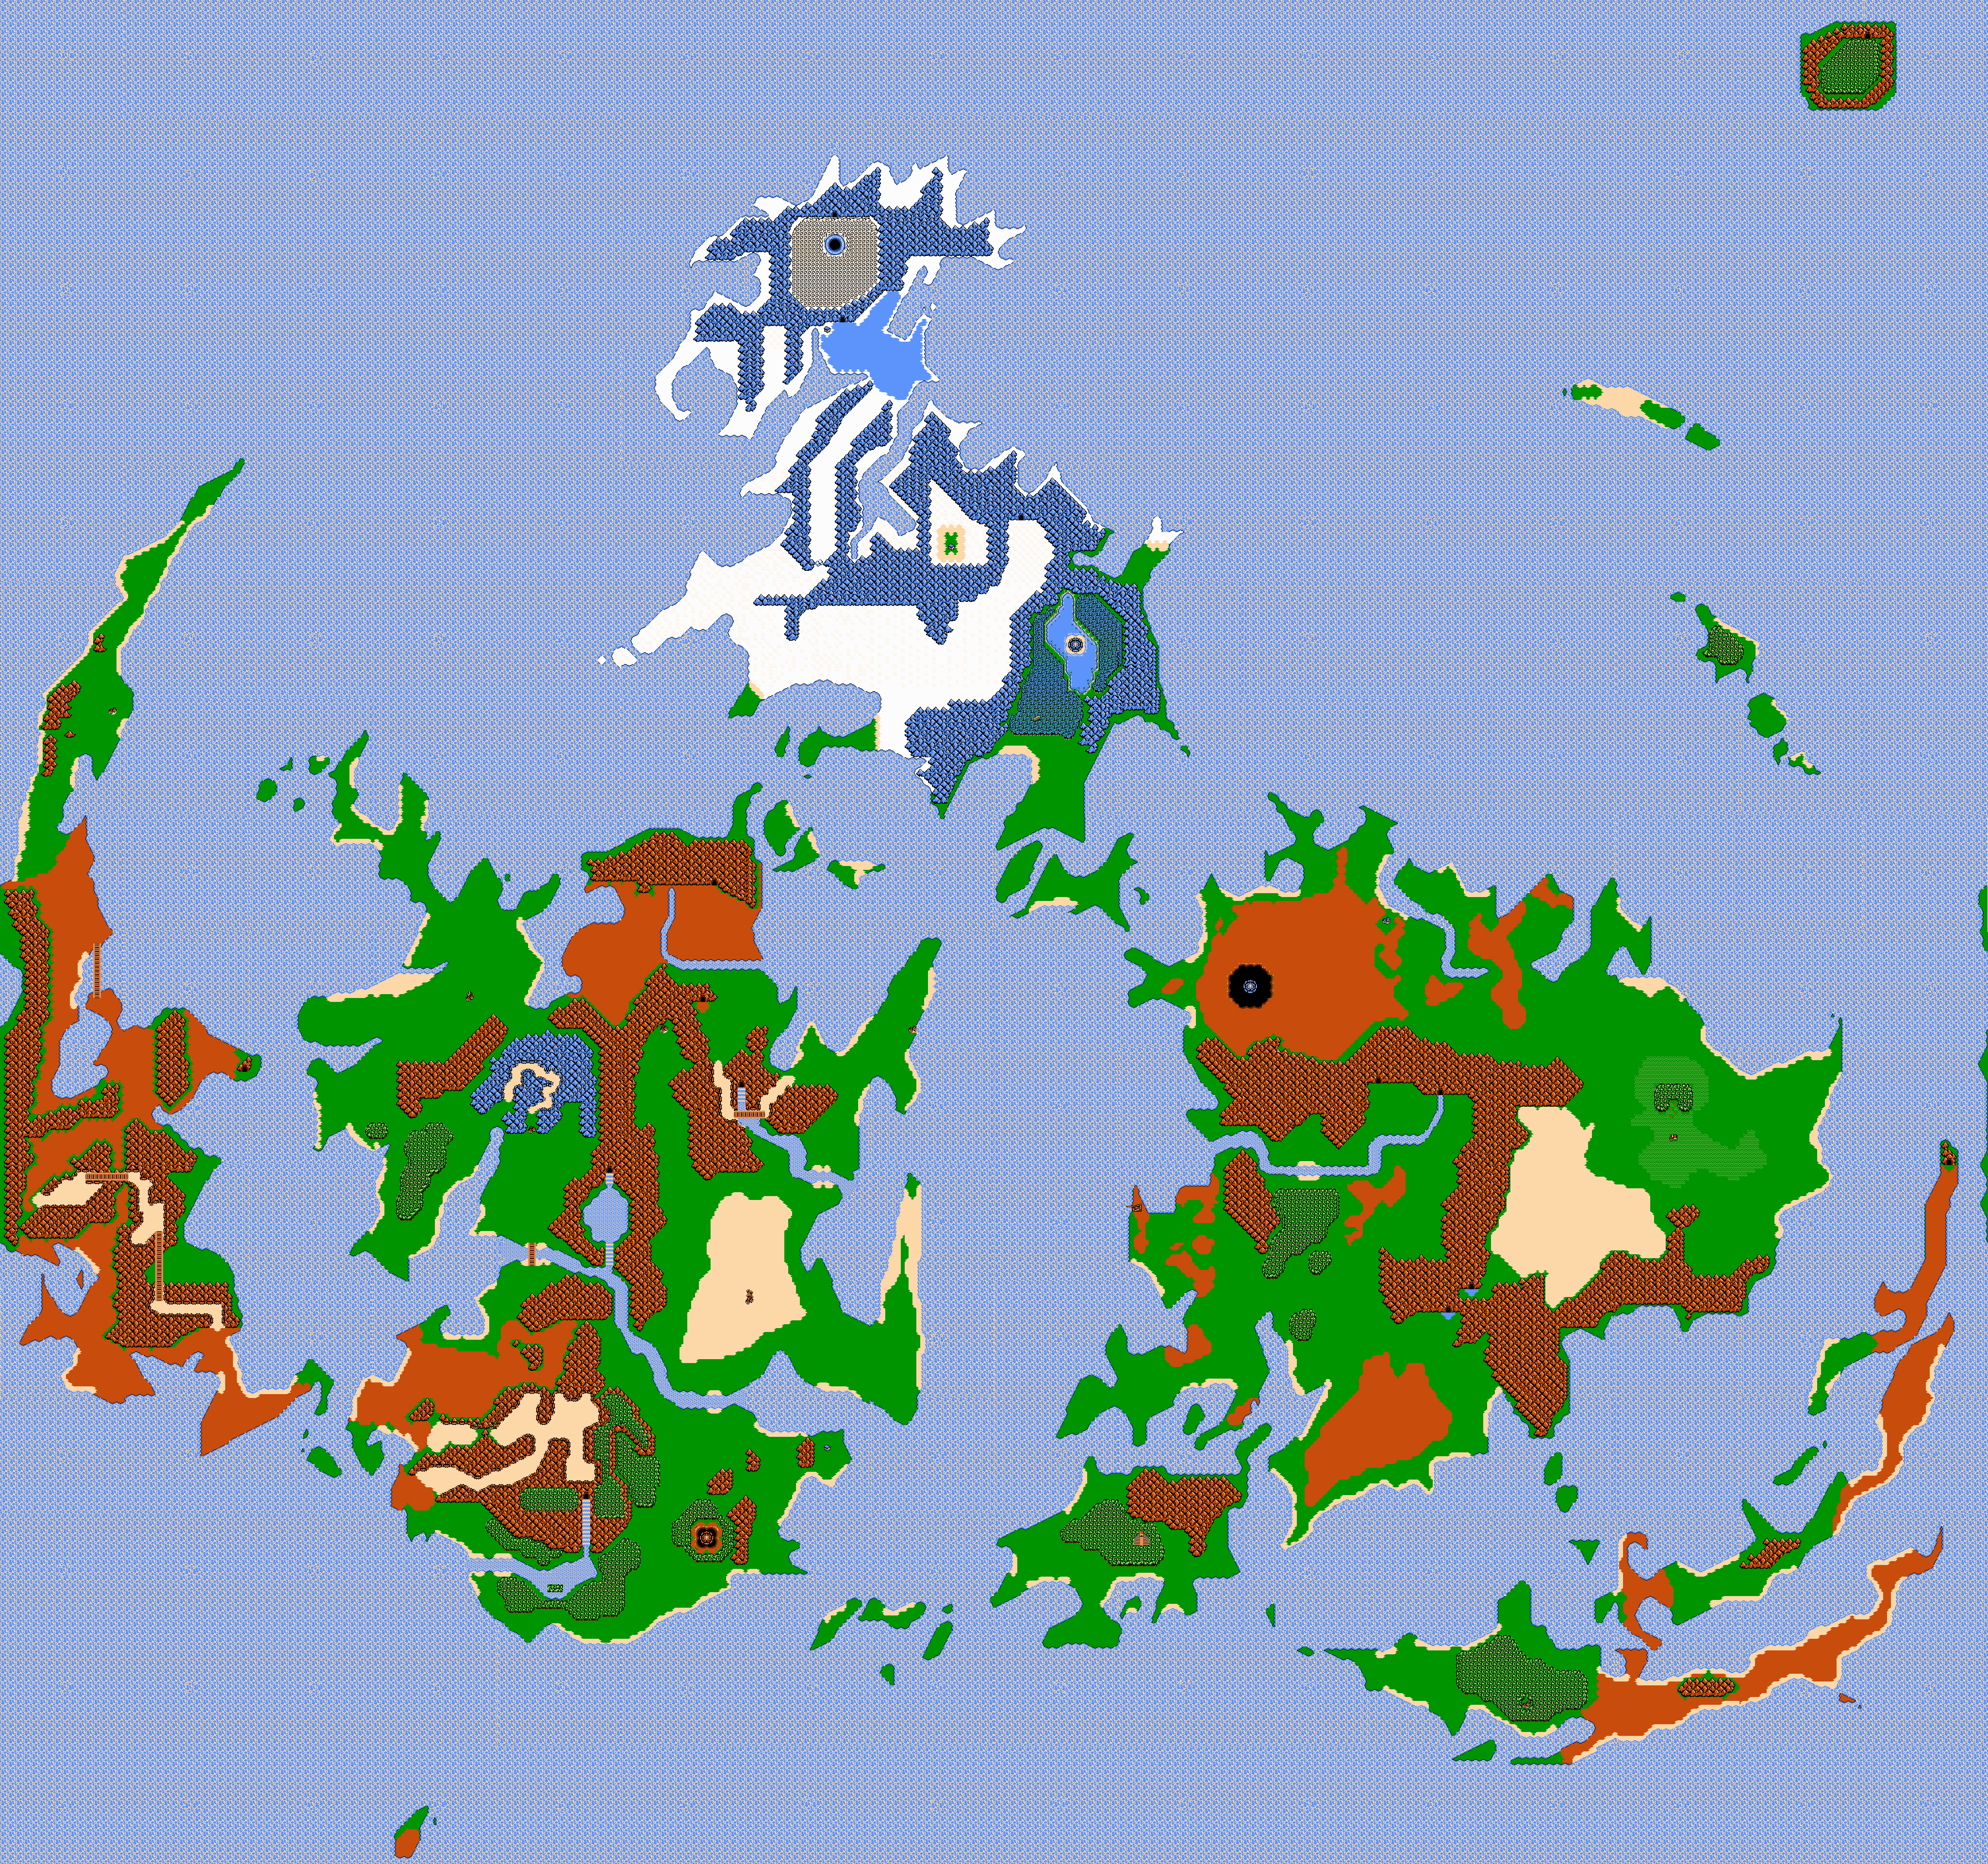 Final Fantasy VII World Map NES 8 BIT Styled by ...